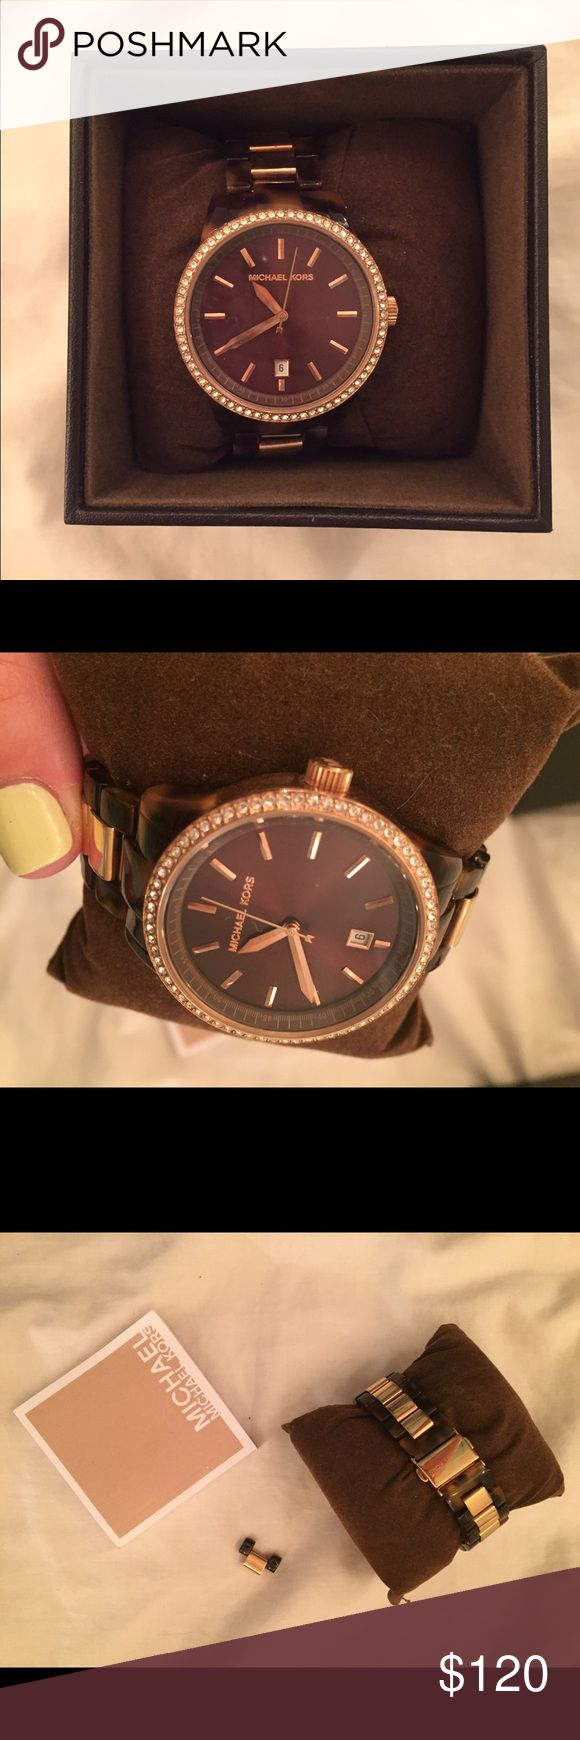 Michael Kors Watch Like new! Barely worn, no scratches. More pictures available upon request. Comes with book and 1 extra link as shown in picture. In original box. Female watch Michael Kors Accessories Watches